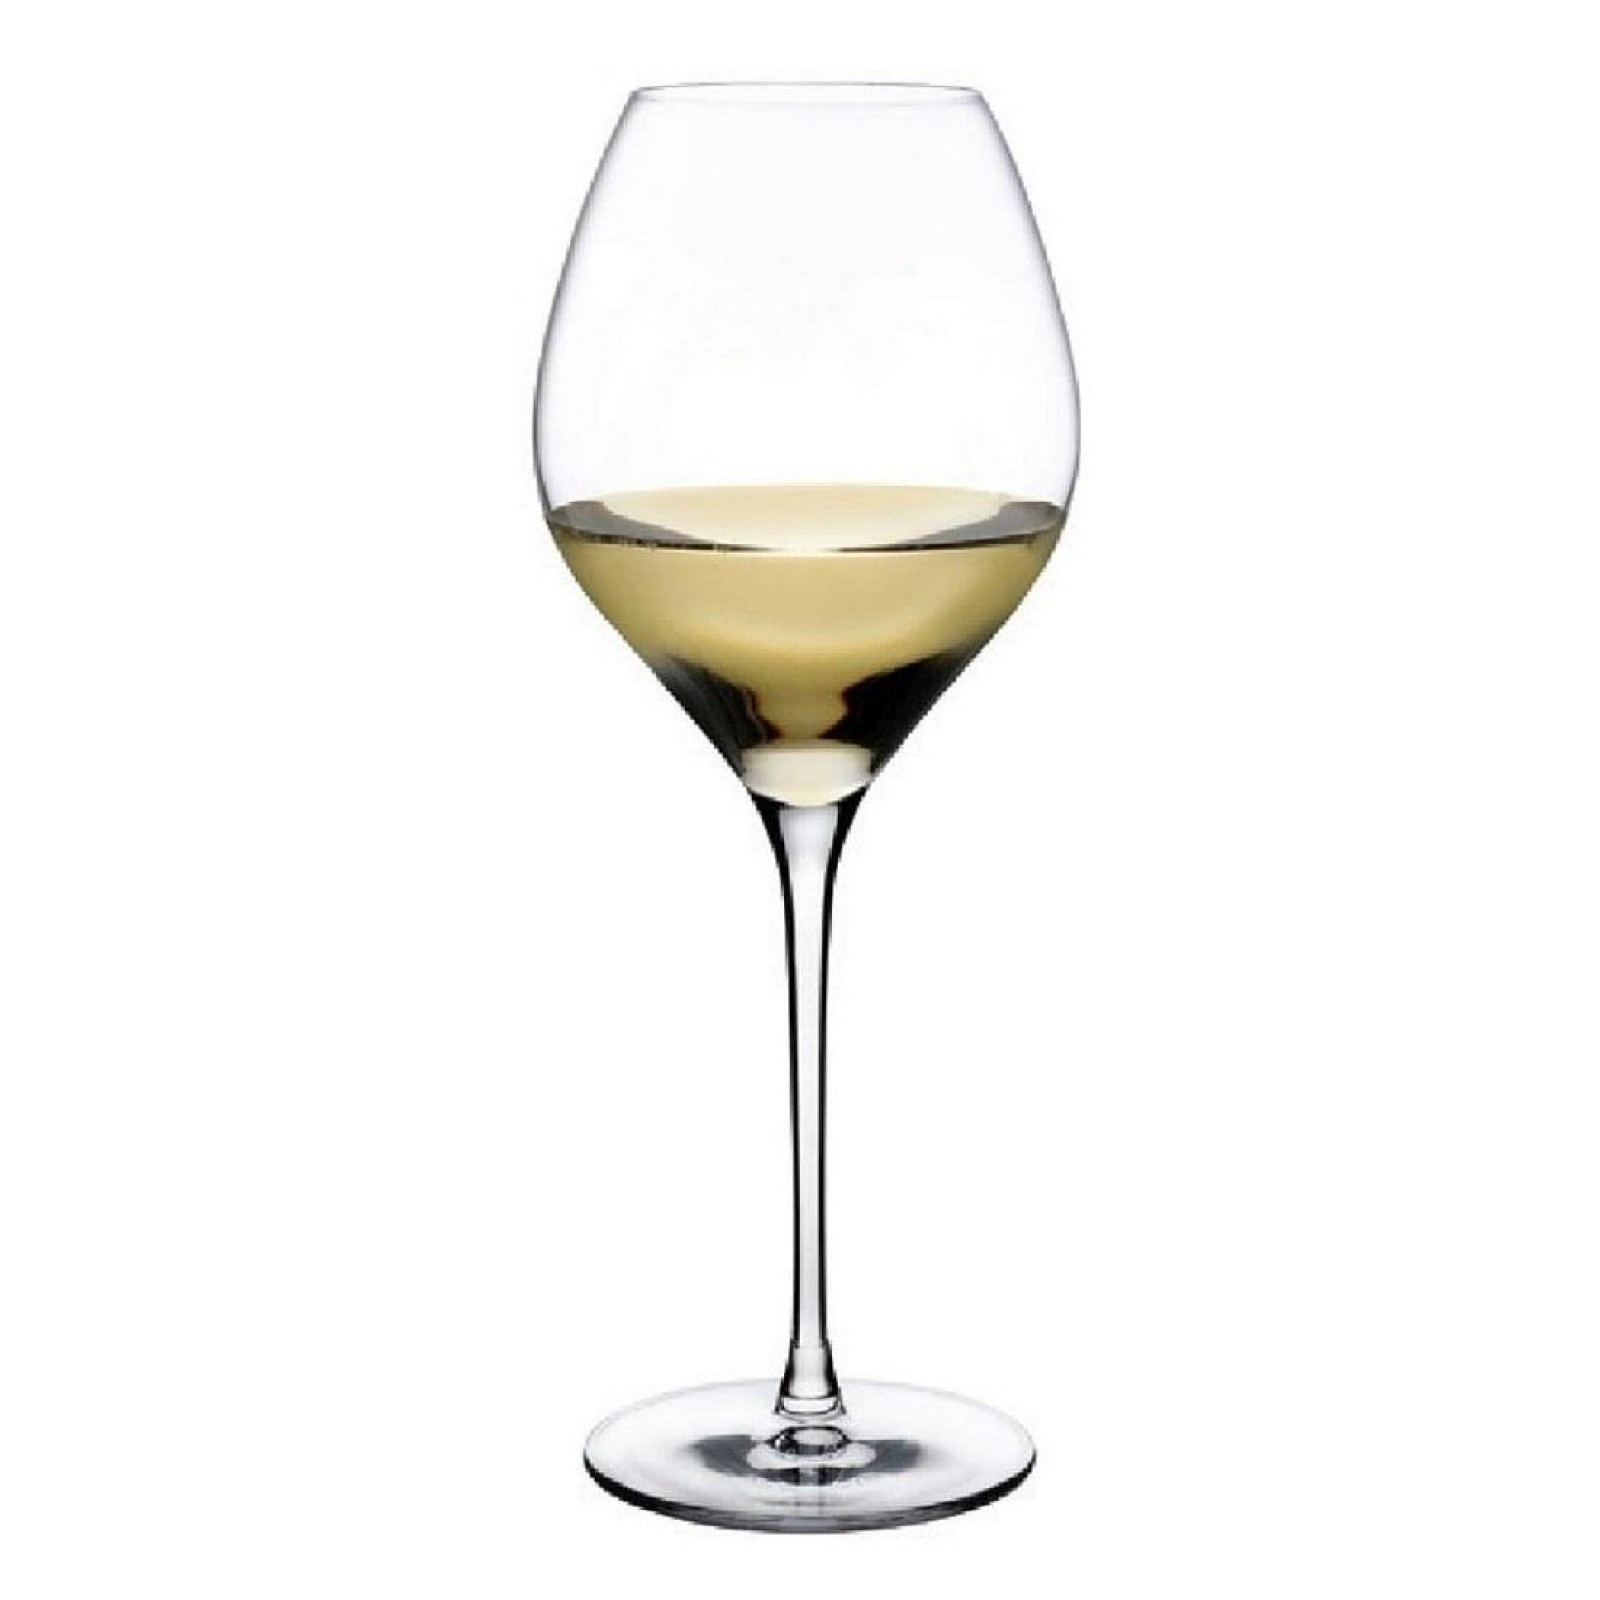 Fantasy Wine Glasses 770 ml (Set of 4) – Nude Glass